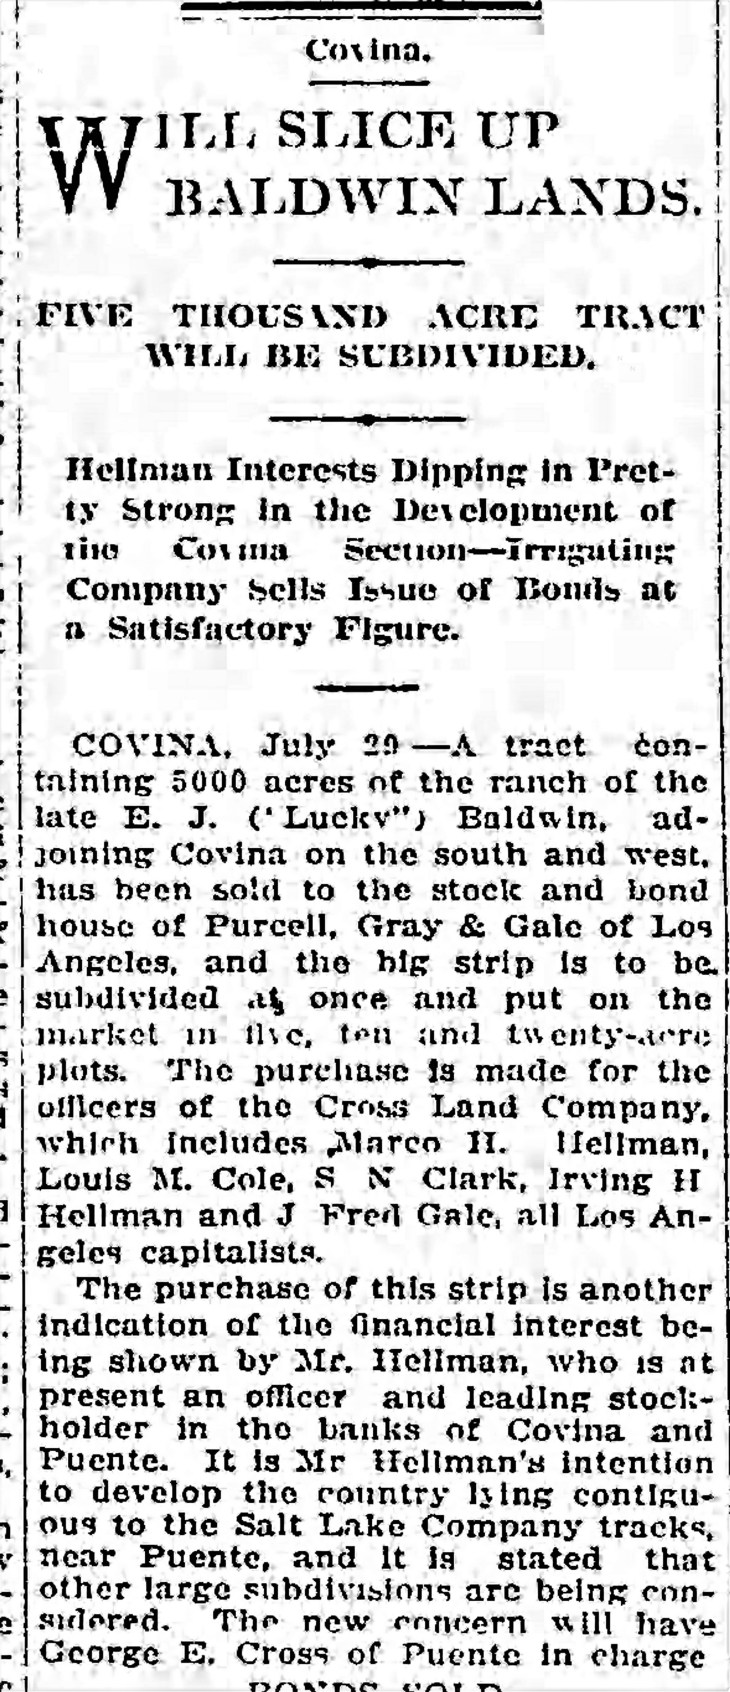 The_Los_Angeles_Times_Sun__Jul_30__1911_